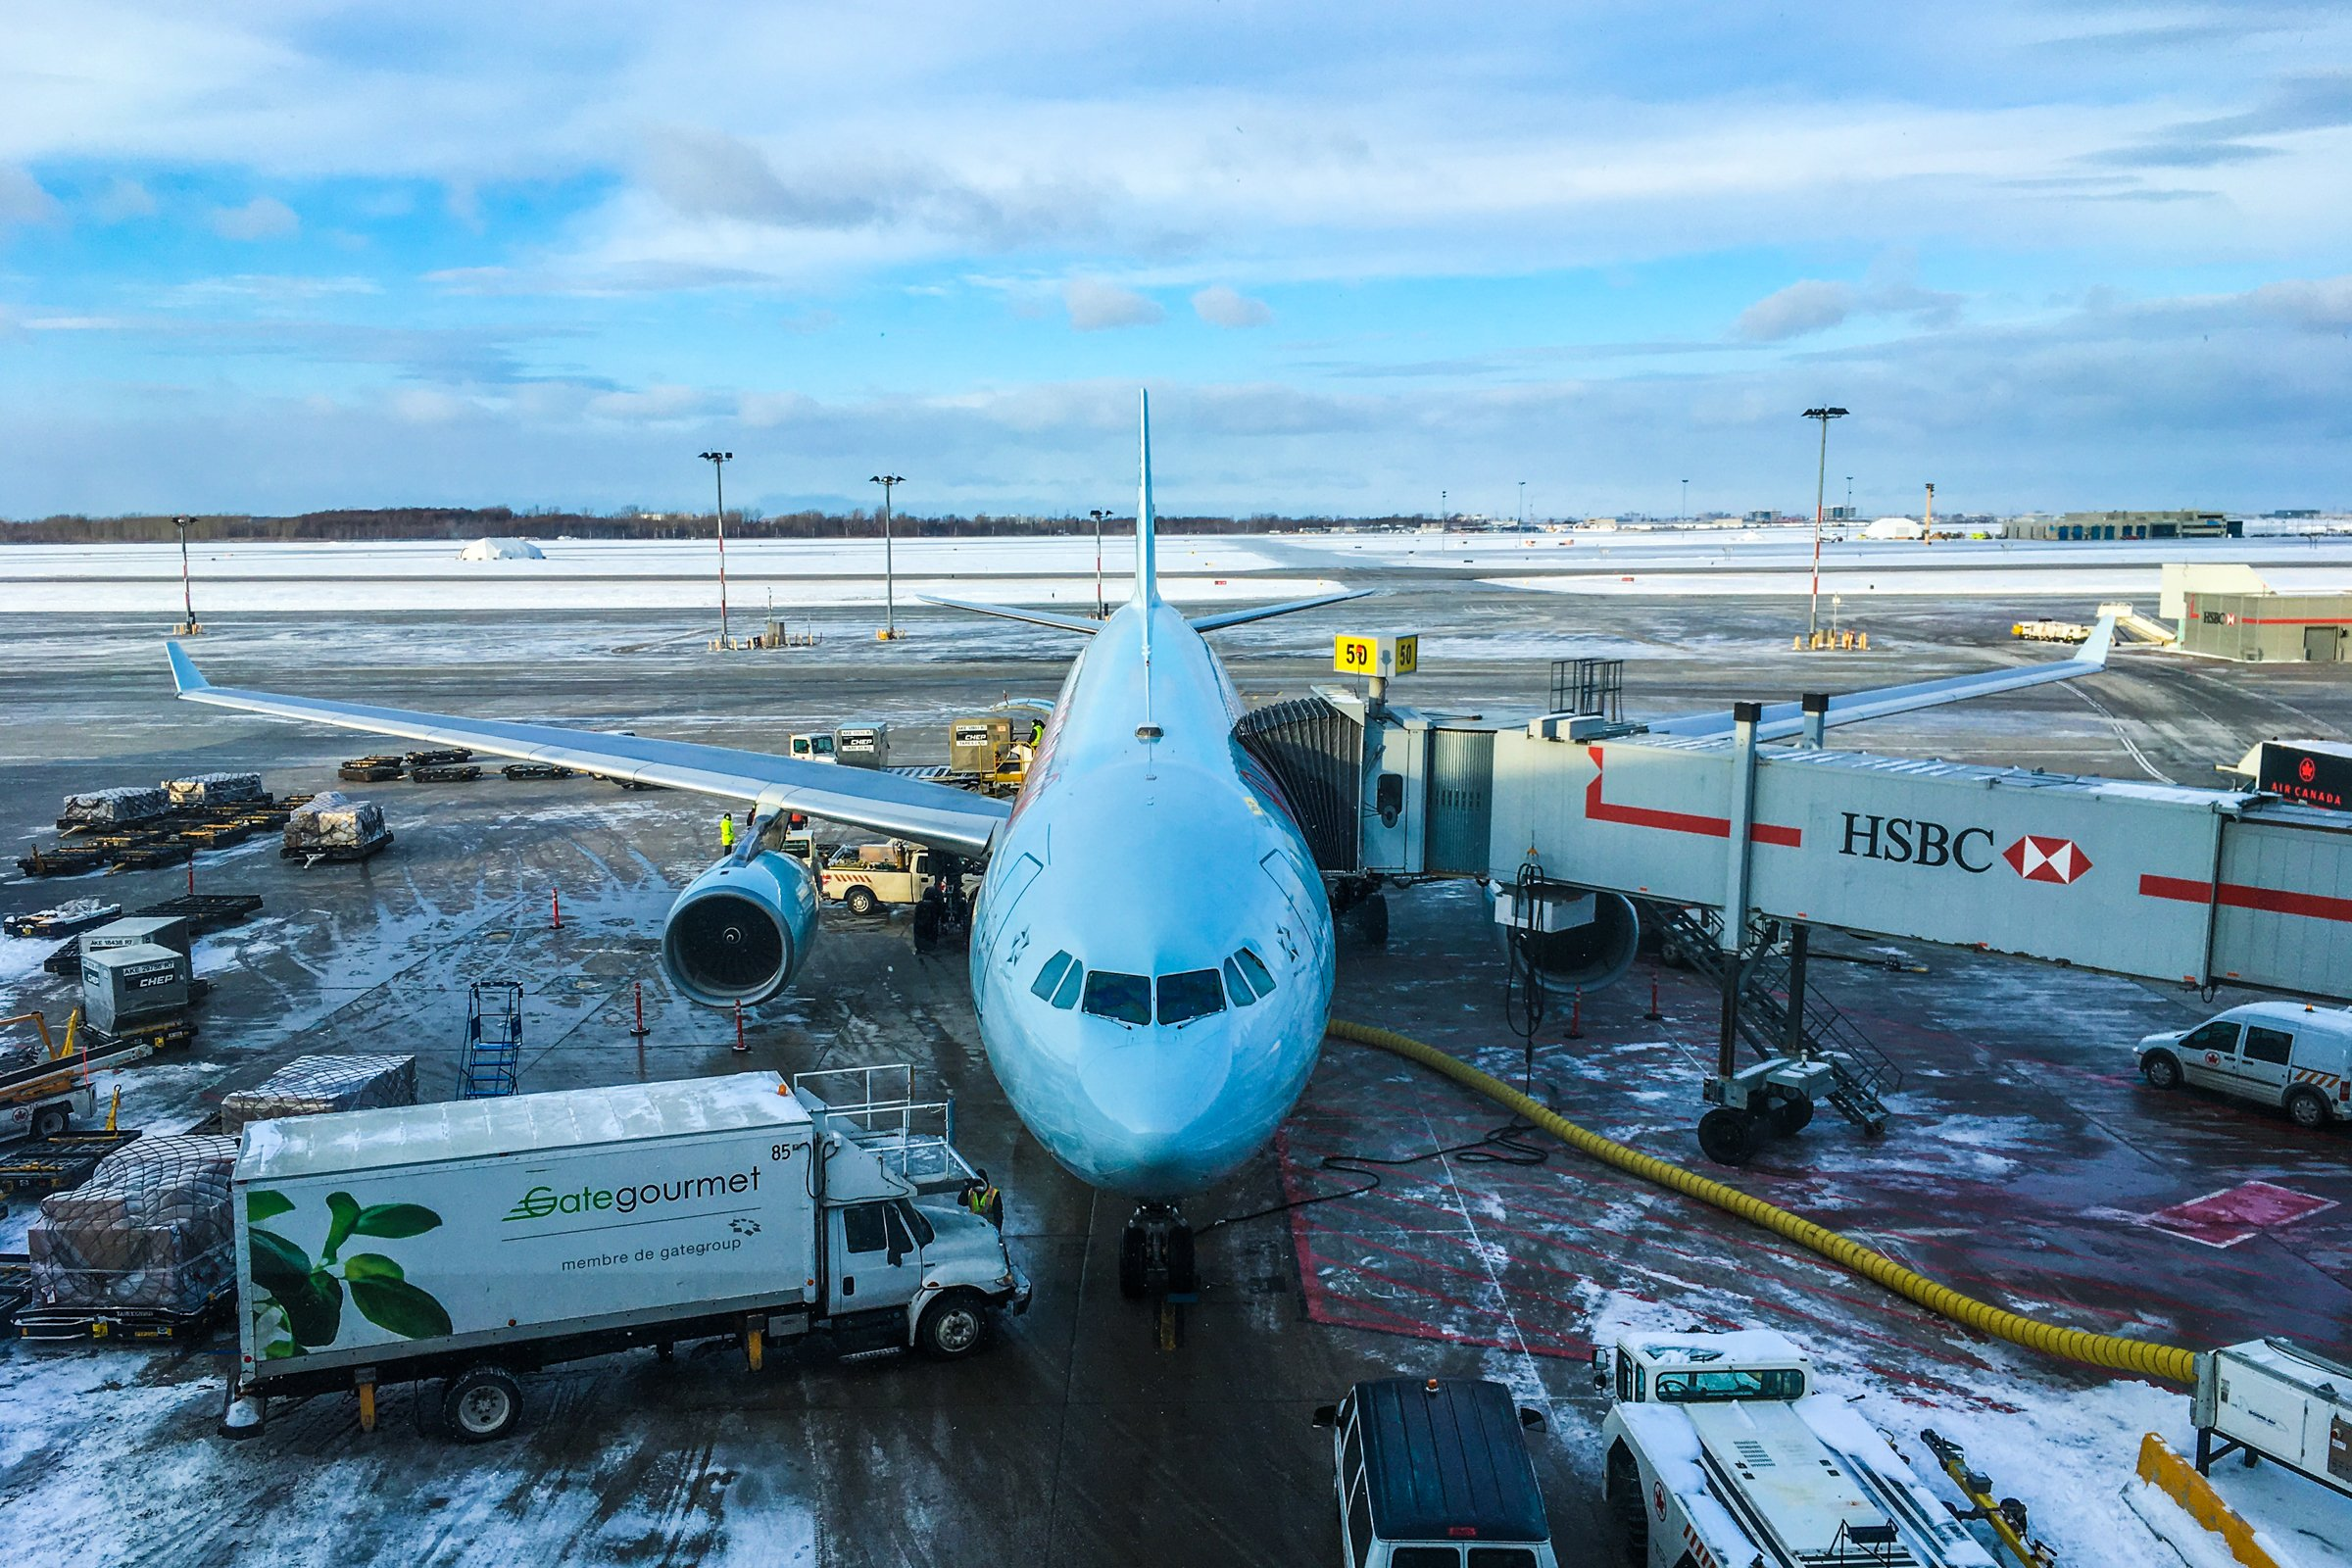 Airplane at Snowy Airport Terminal